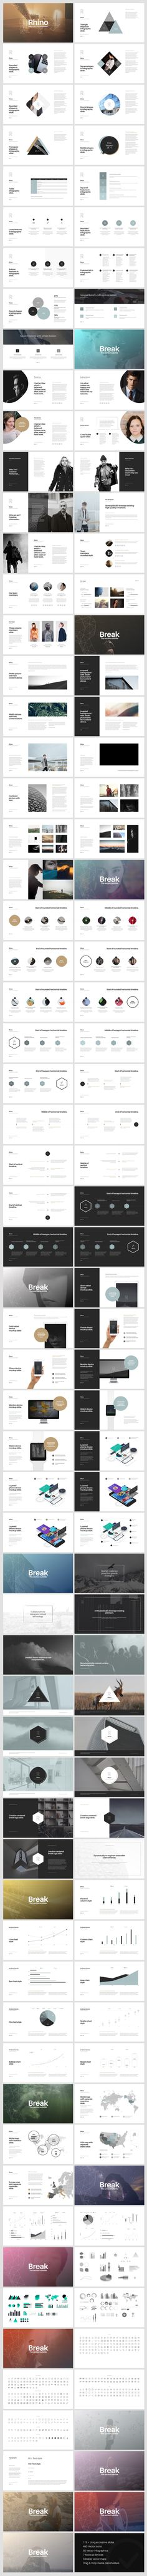 Rhino Keynote Presentation Template by GoaShape on Creative Market - Keynote - Ideas of Keynote - Rhino Keynote Presentation Template by GoaShape on Creative Market Graphisches Design, Slide Design, Book Design, Layout Design, Keynote Design, Design Presentation, Presentation Templates, Template Power Point, Web Mobile